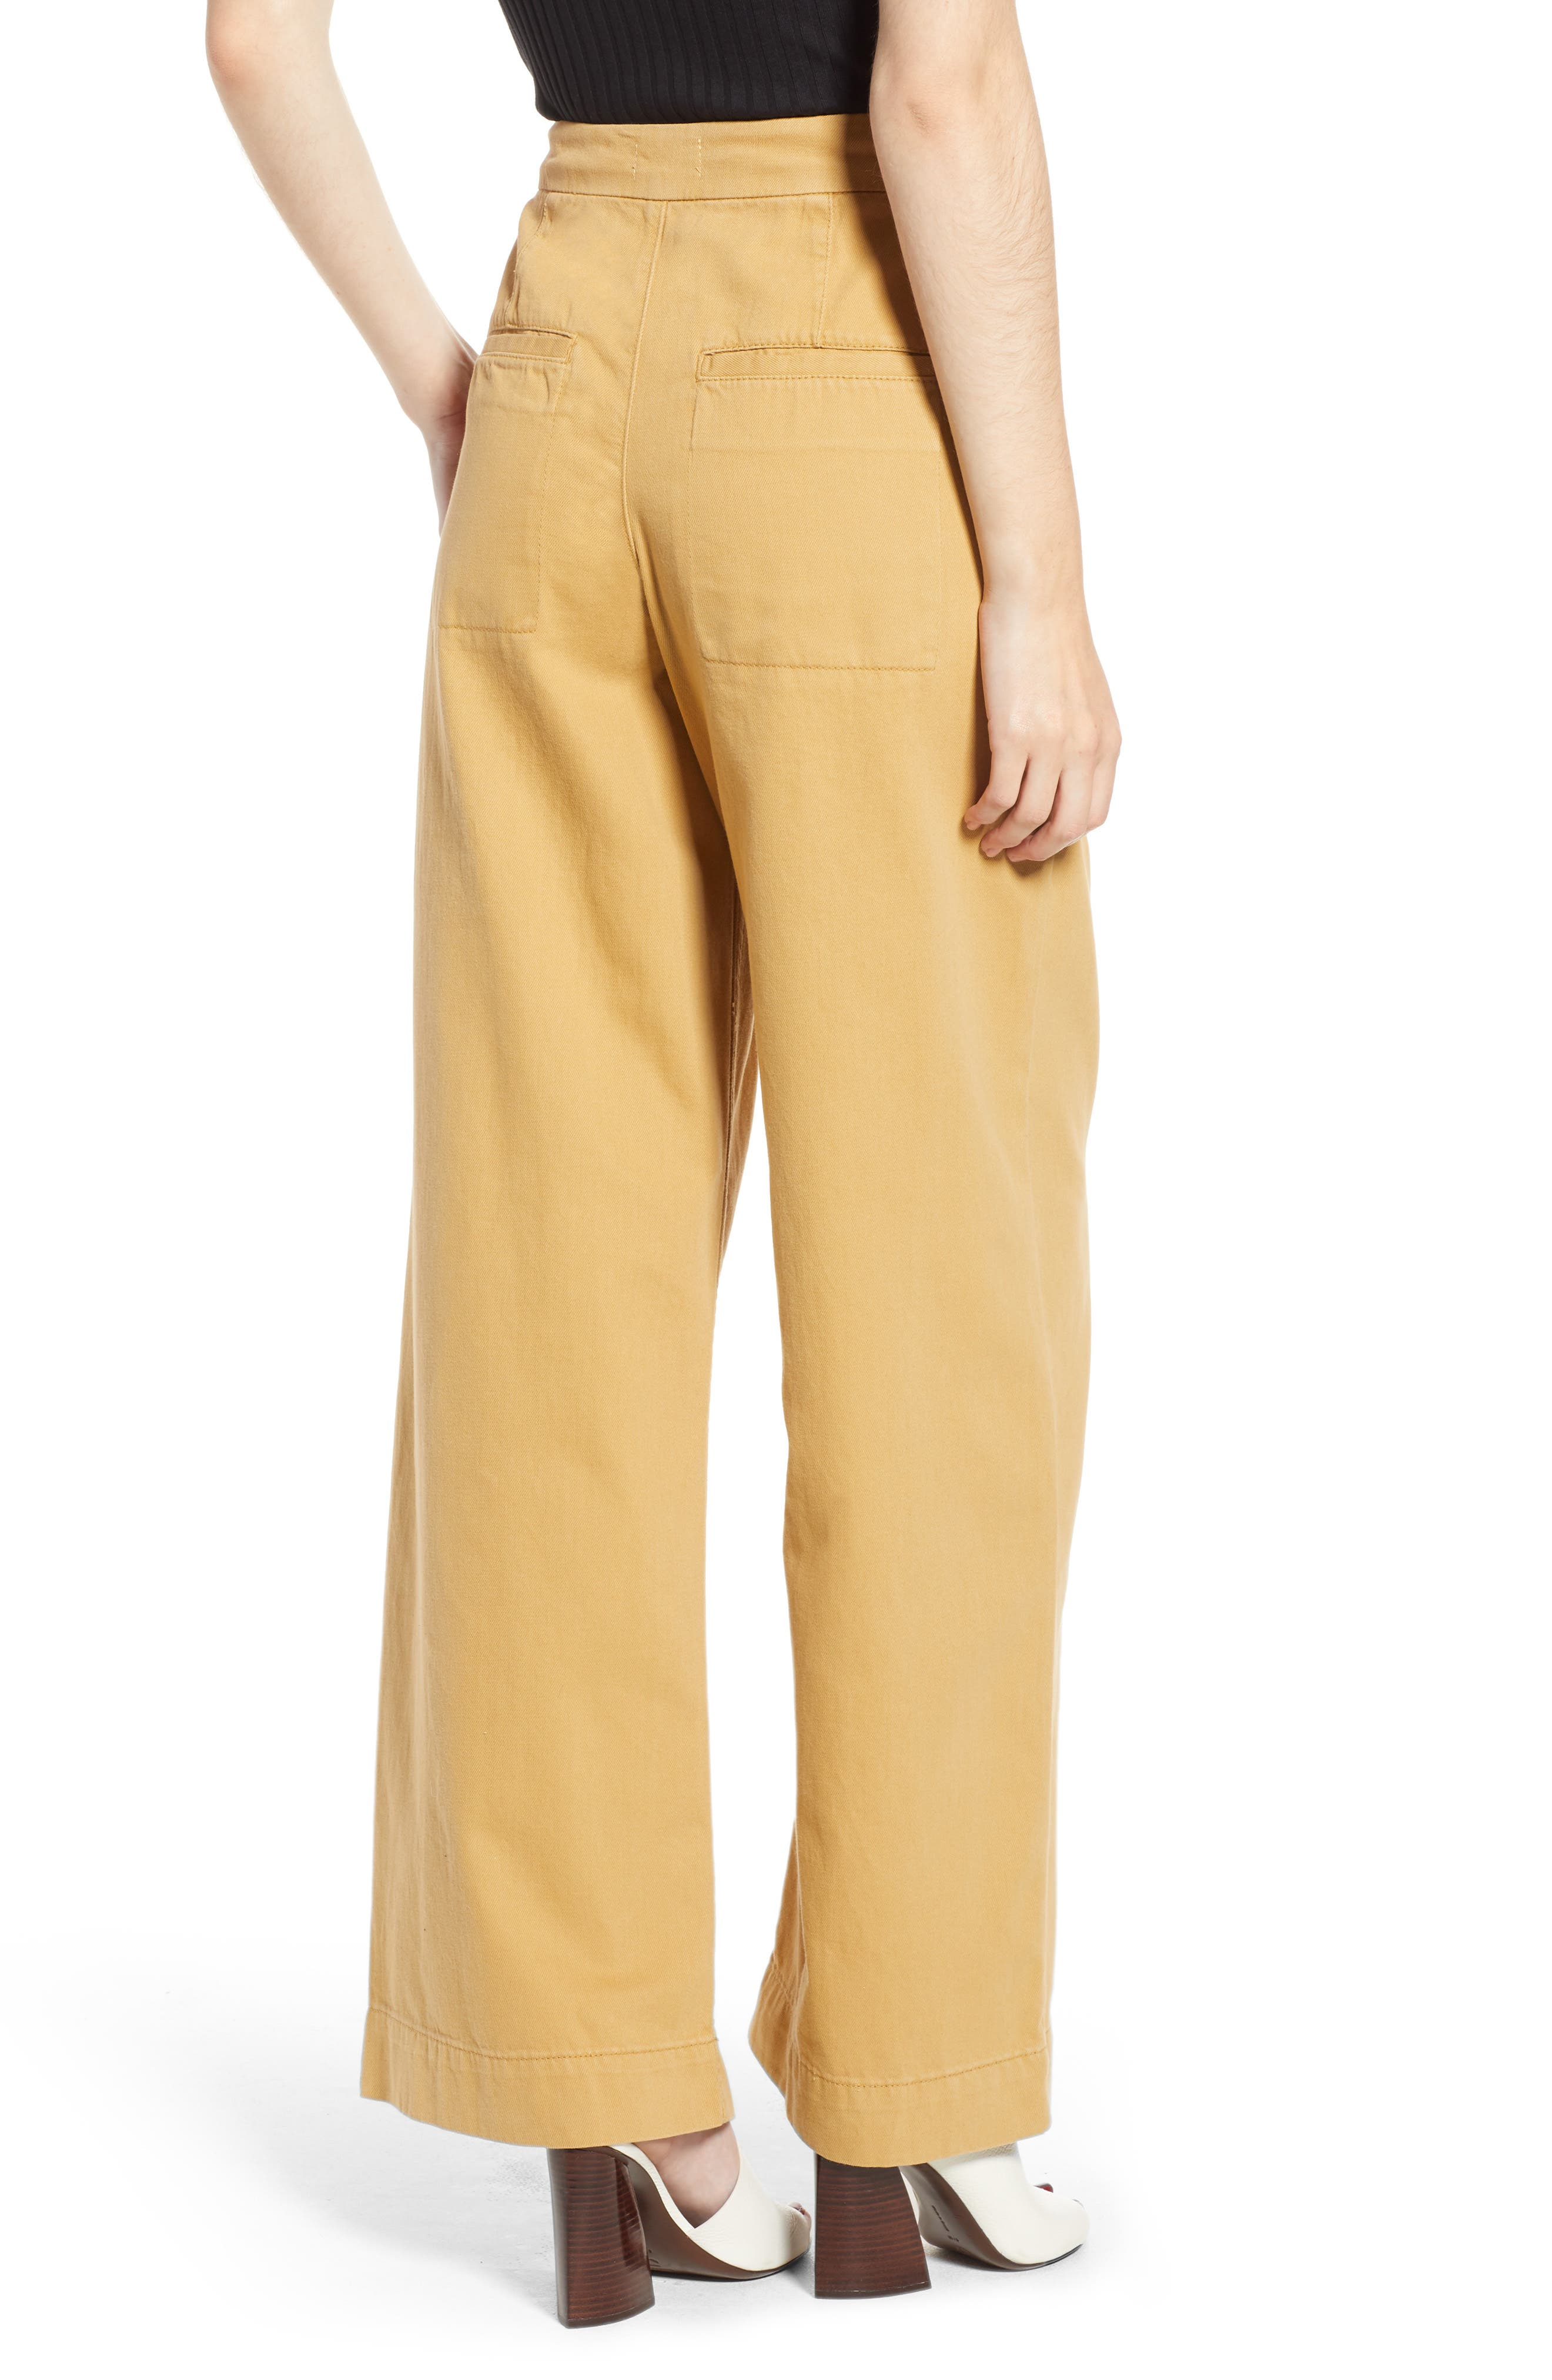 Wonder Wide Chino Trousers,                             Alternate thumbnail 2, color,                             250